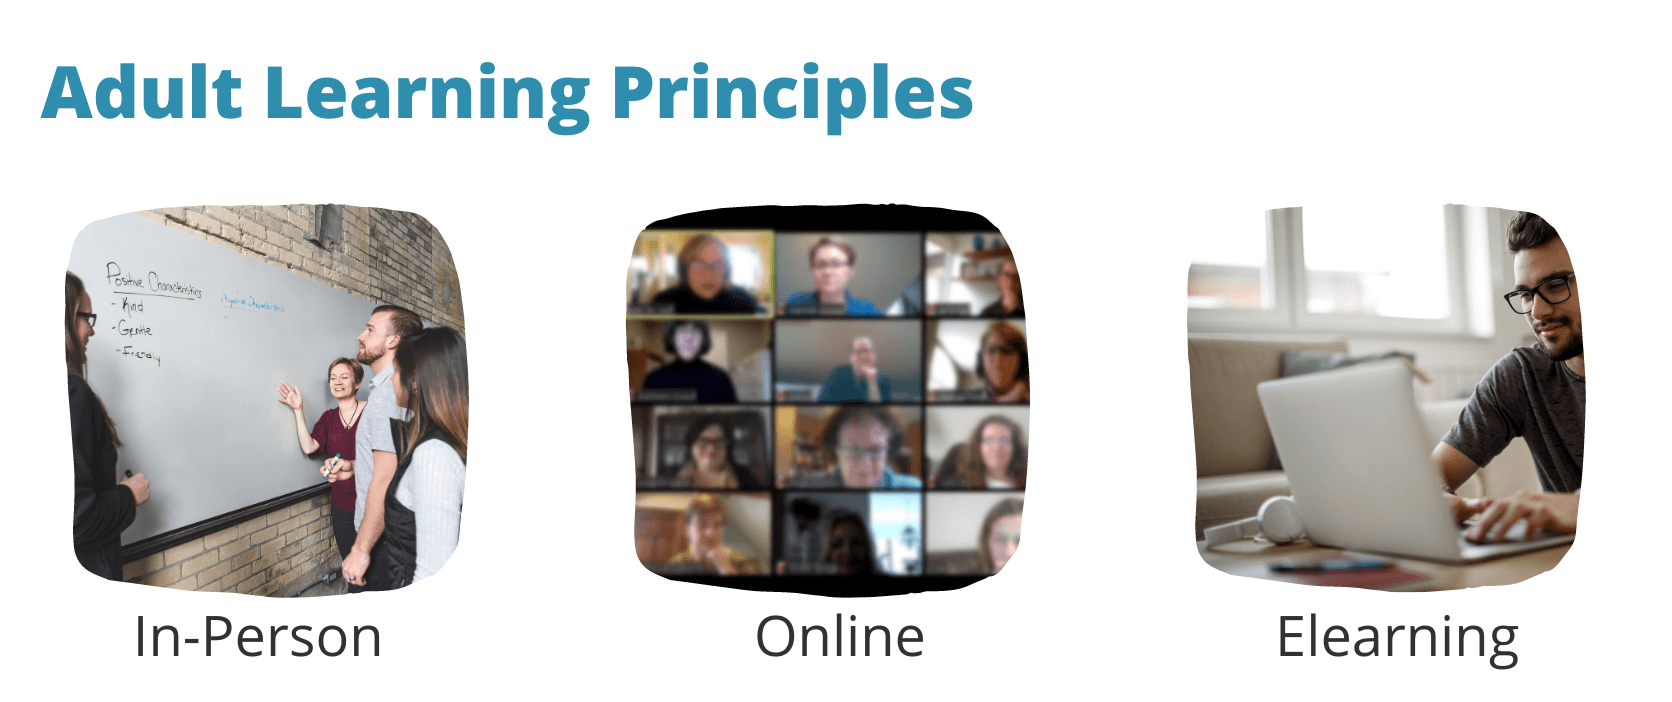 banner-for-adult-learning-principles-with-three-images-for-in-person-training-online-training-elearning